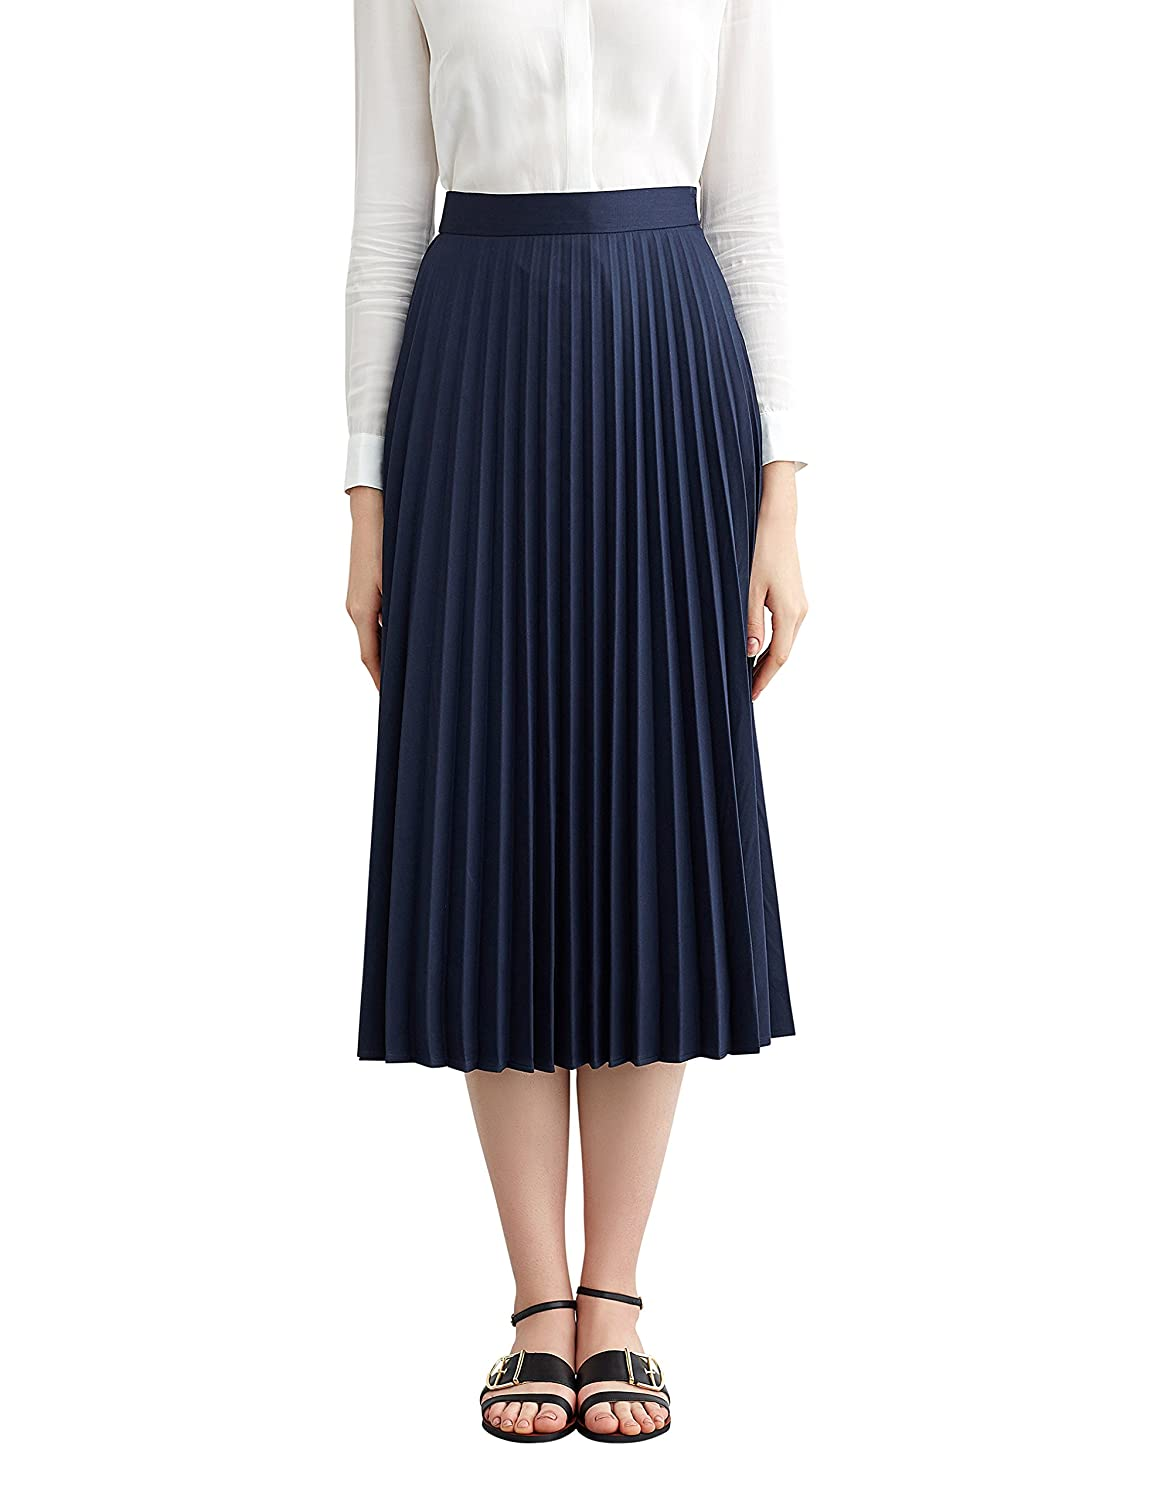 1920s Style Skirts Simple Retro Womens High Waist Basic Pleated A-line Midi Skirt  AT vintagedancer.com